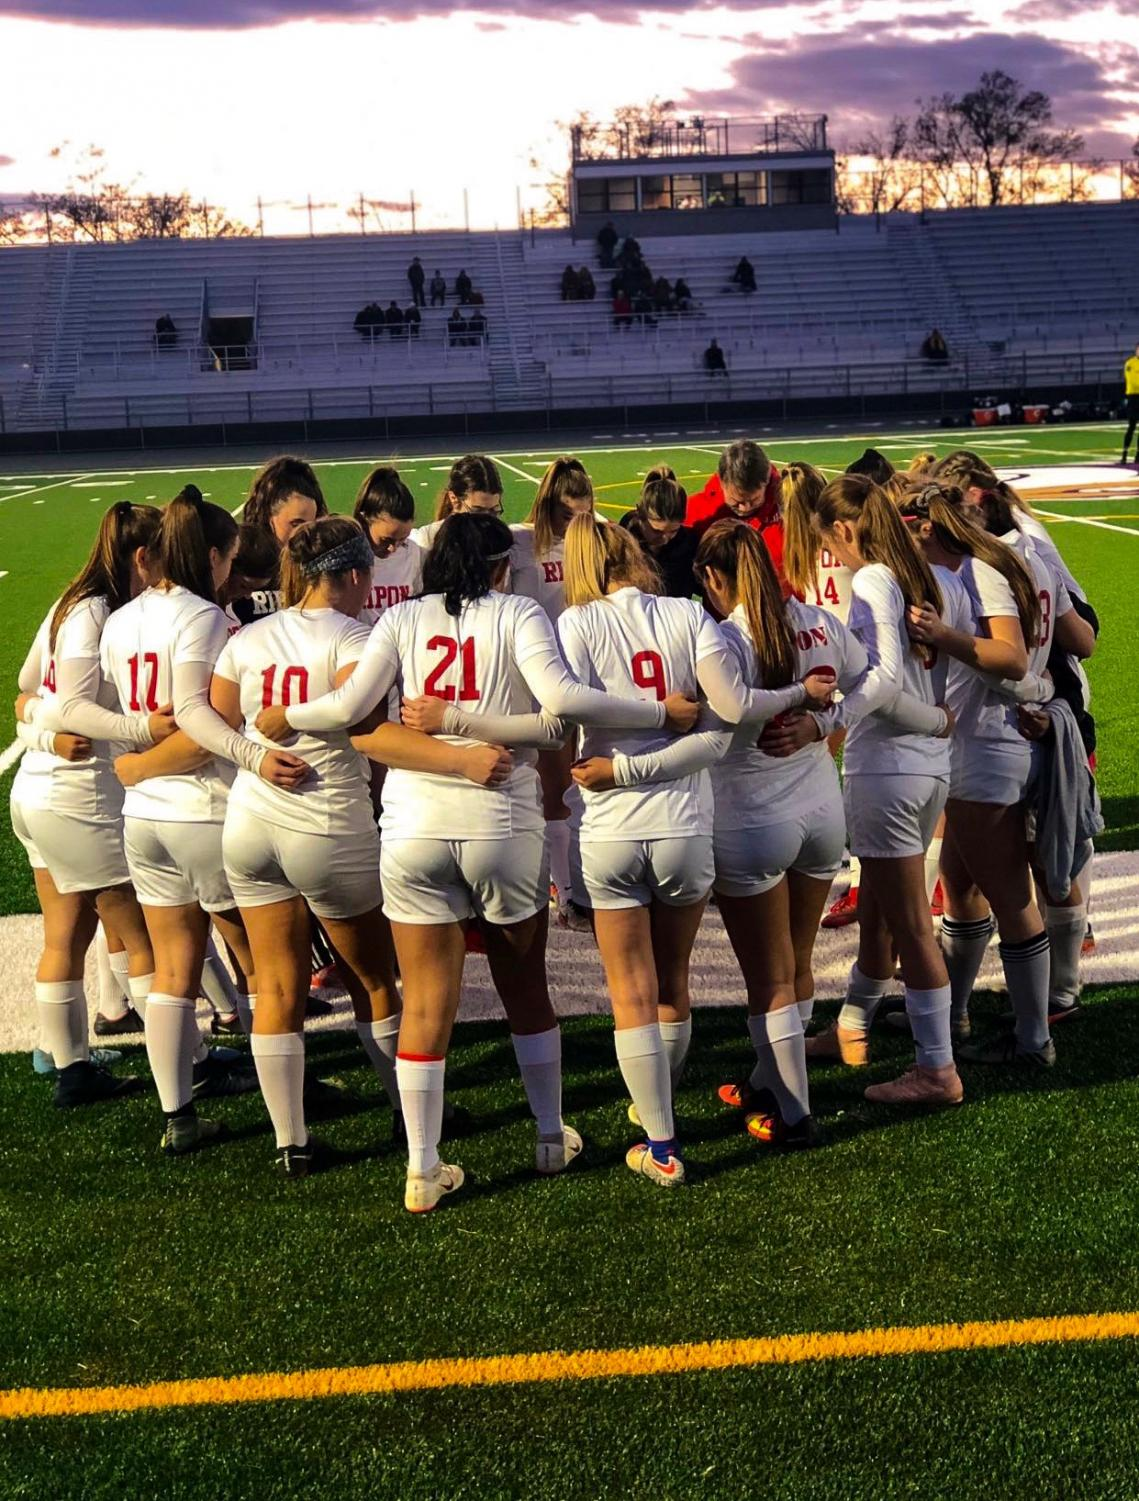 Photo of the team praying before they take the field, to win a sections title. Photo taken by @maddymeyer0506 on Twitter.